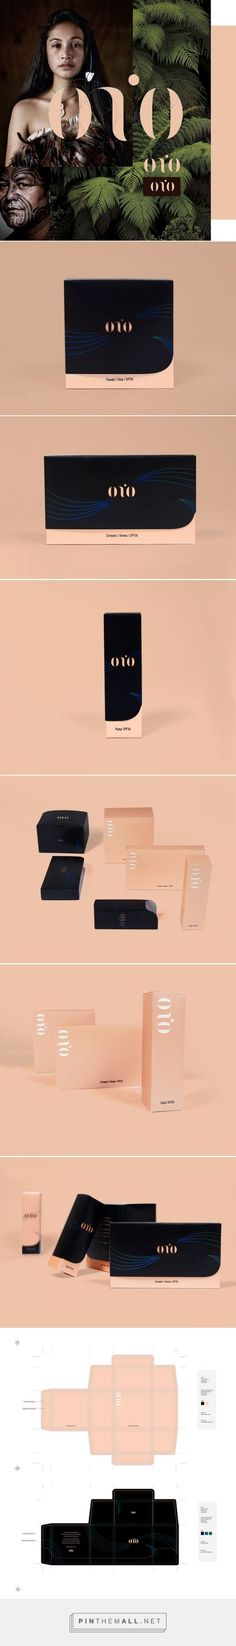 """""""onio"""" cosmetic brand and packaging from New Zealand on Behance by Ze Tan (Zia) curated by Packaging Diva PD. Fragrance free and extracted from the essence of the """"monio"""" plant, which is found only in New Zealand."""